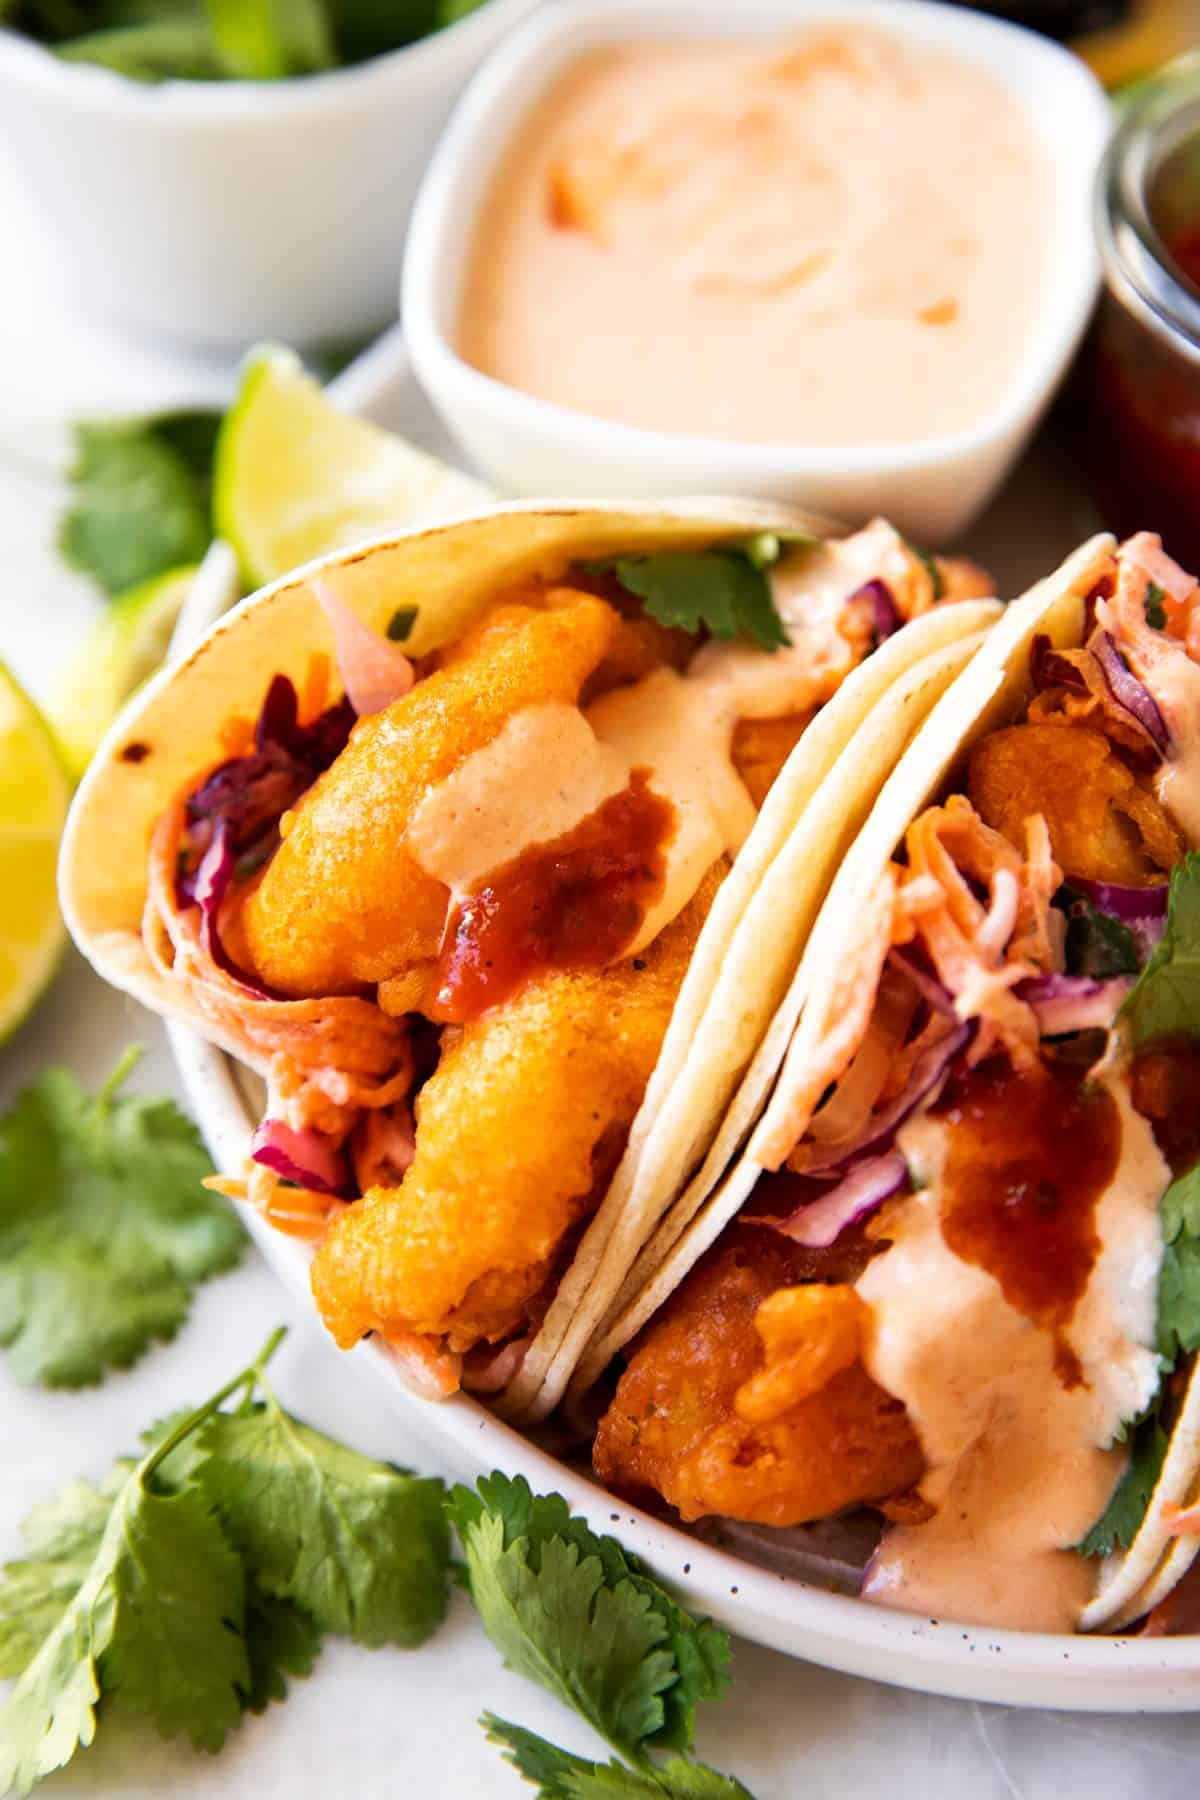 baja fish tacos on a plate with sauces in background